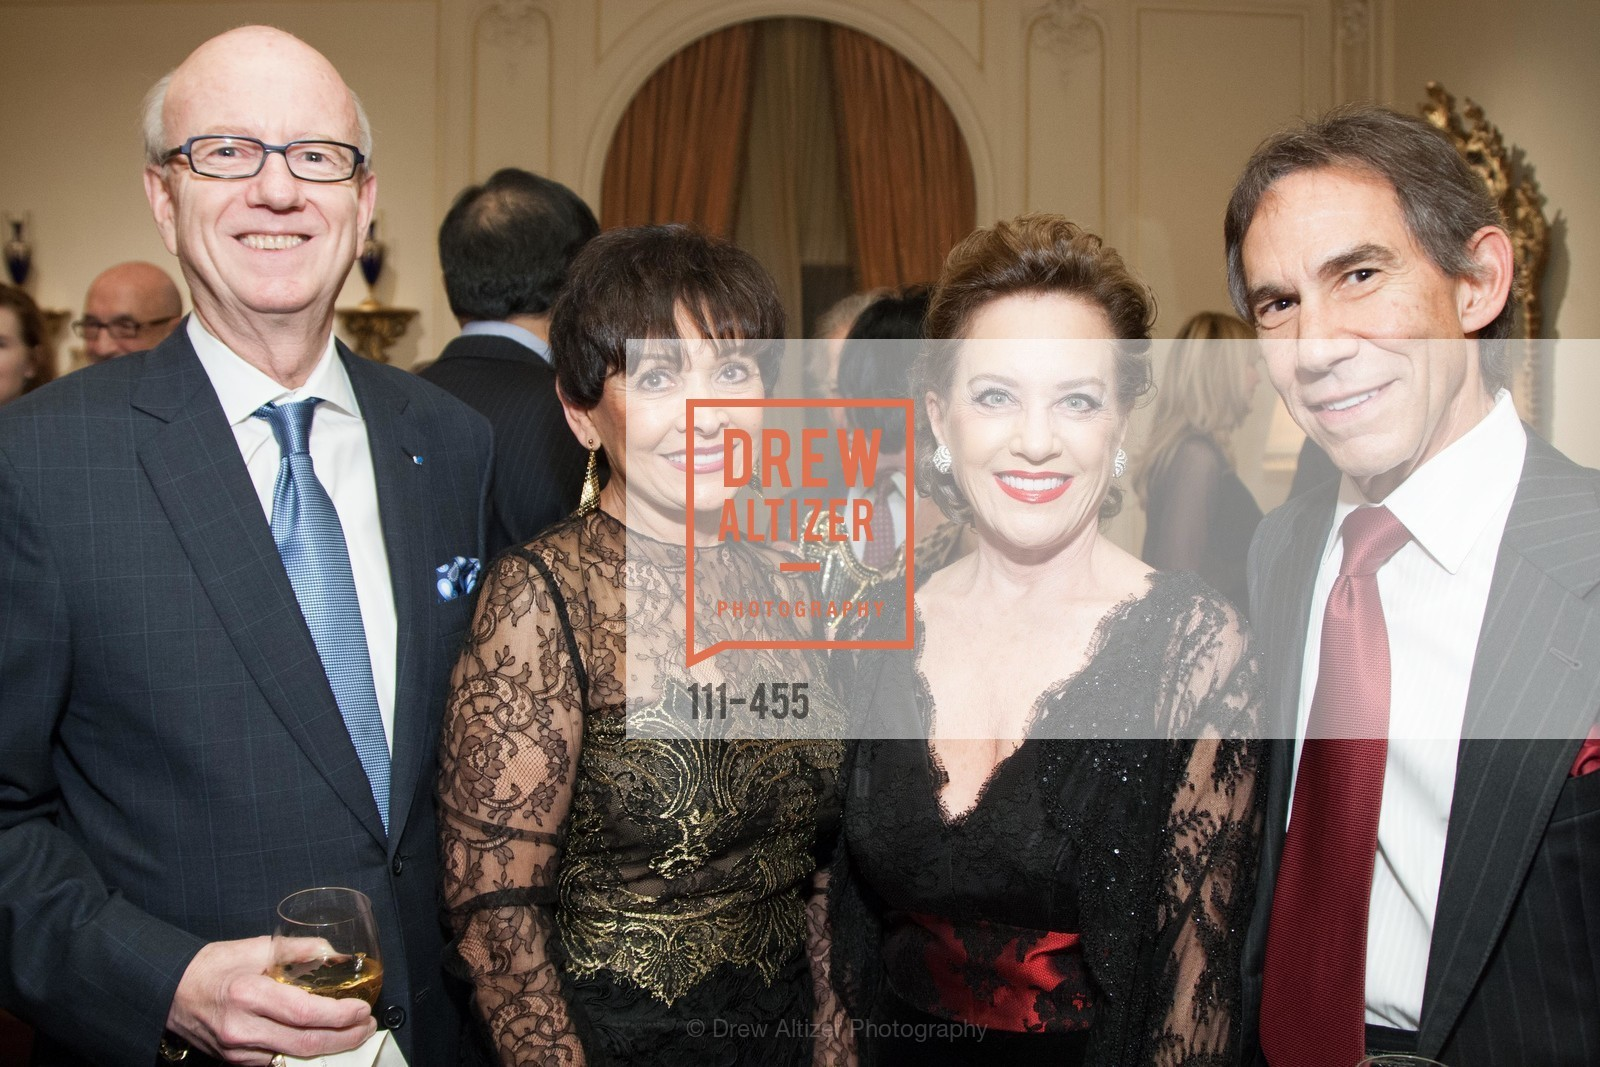 Tom Horn, Marti McMahon Diamond, Robin Collins, Stephen Diamond, SAN FRANCISCO BALLET Grand Benefactors Reception, US. US, January 8th, 2014,Drew Altizer, Drew Altizer Photography, full-service agency, private events, San Francisco photographer, photographer california